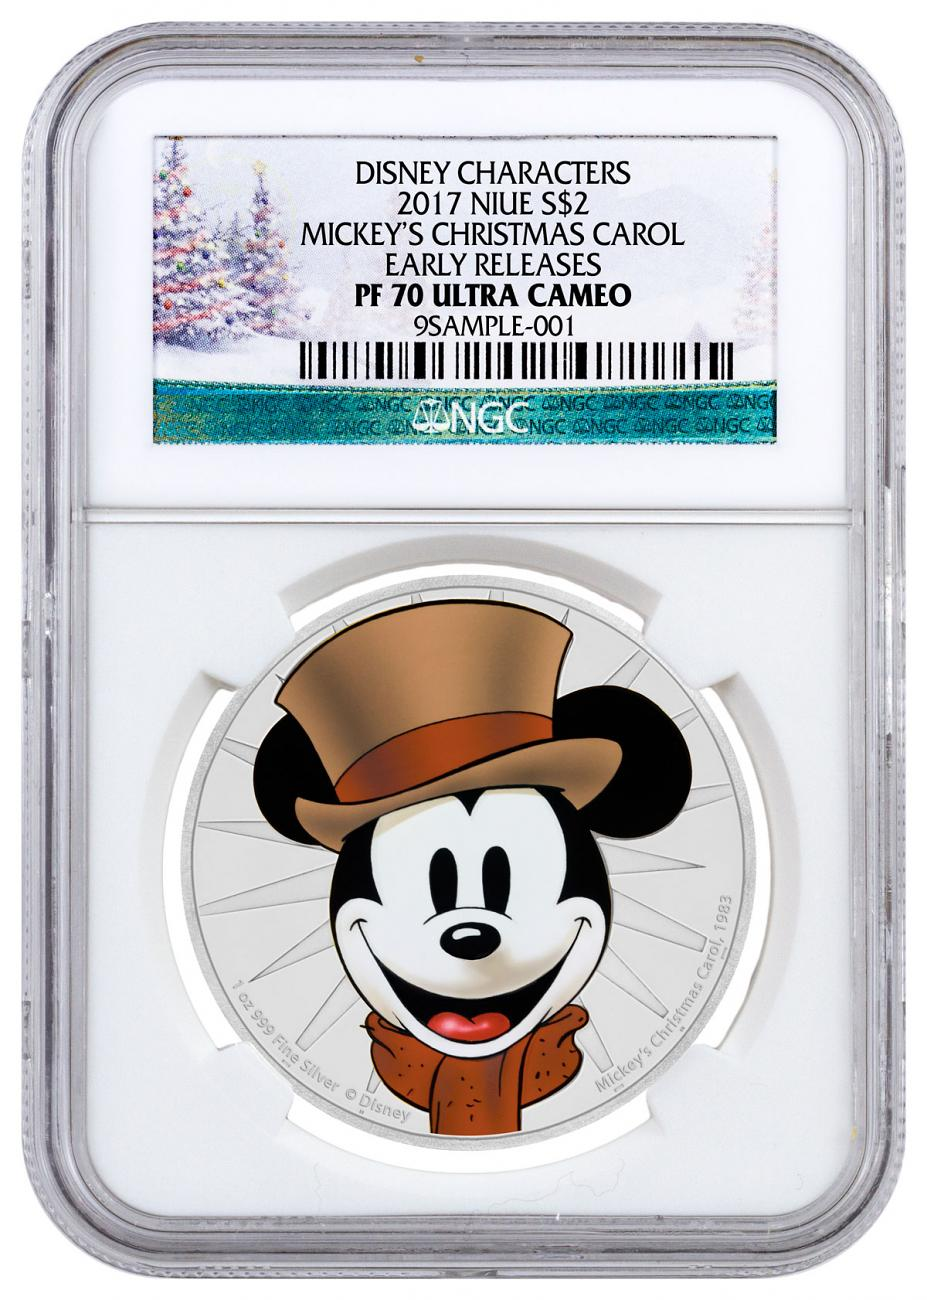 2017 Niue Mickey Through the Ages - Mickey's Christmas Carol 1 oz Silver Colorized Proof $2 Coin NGC PF70 UC ER Holiday Label